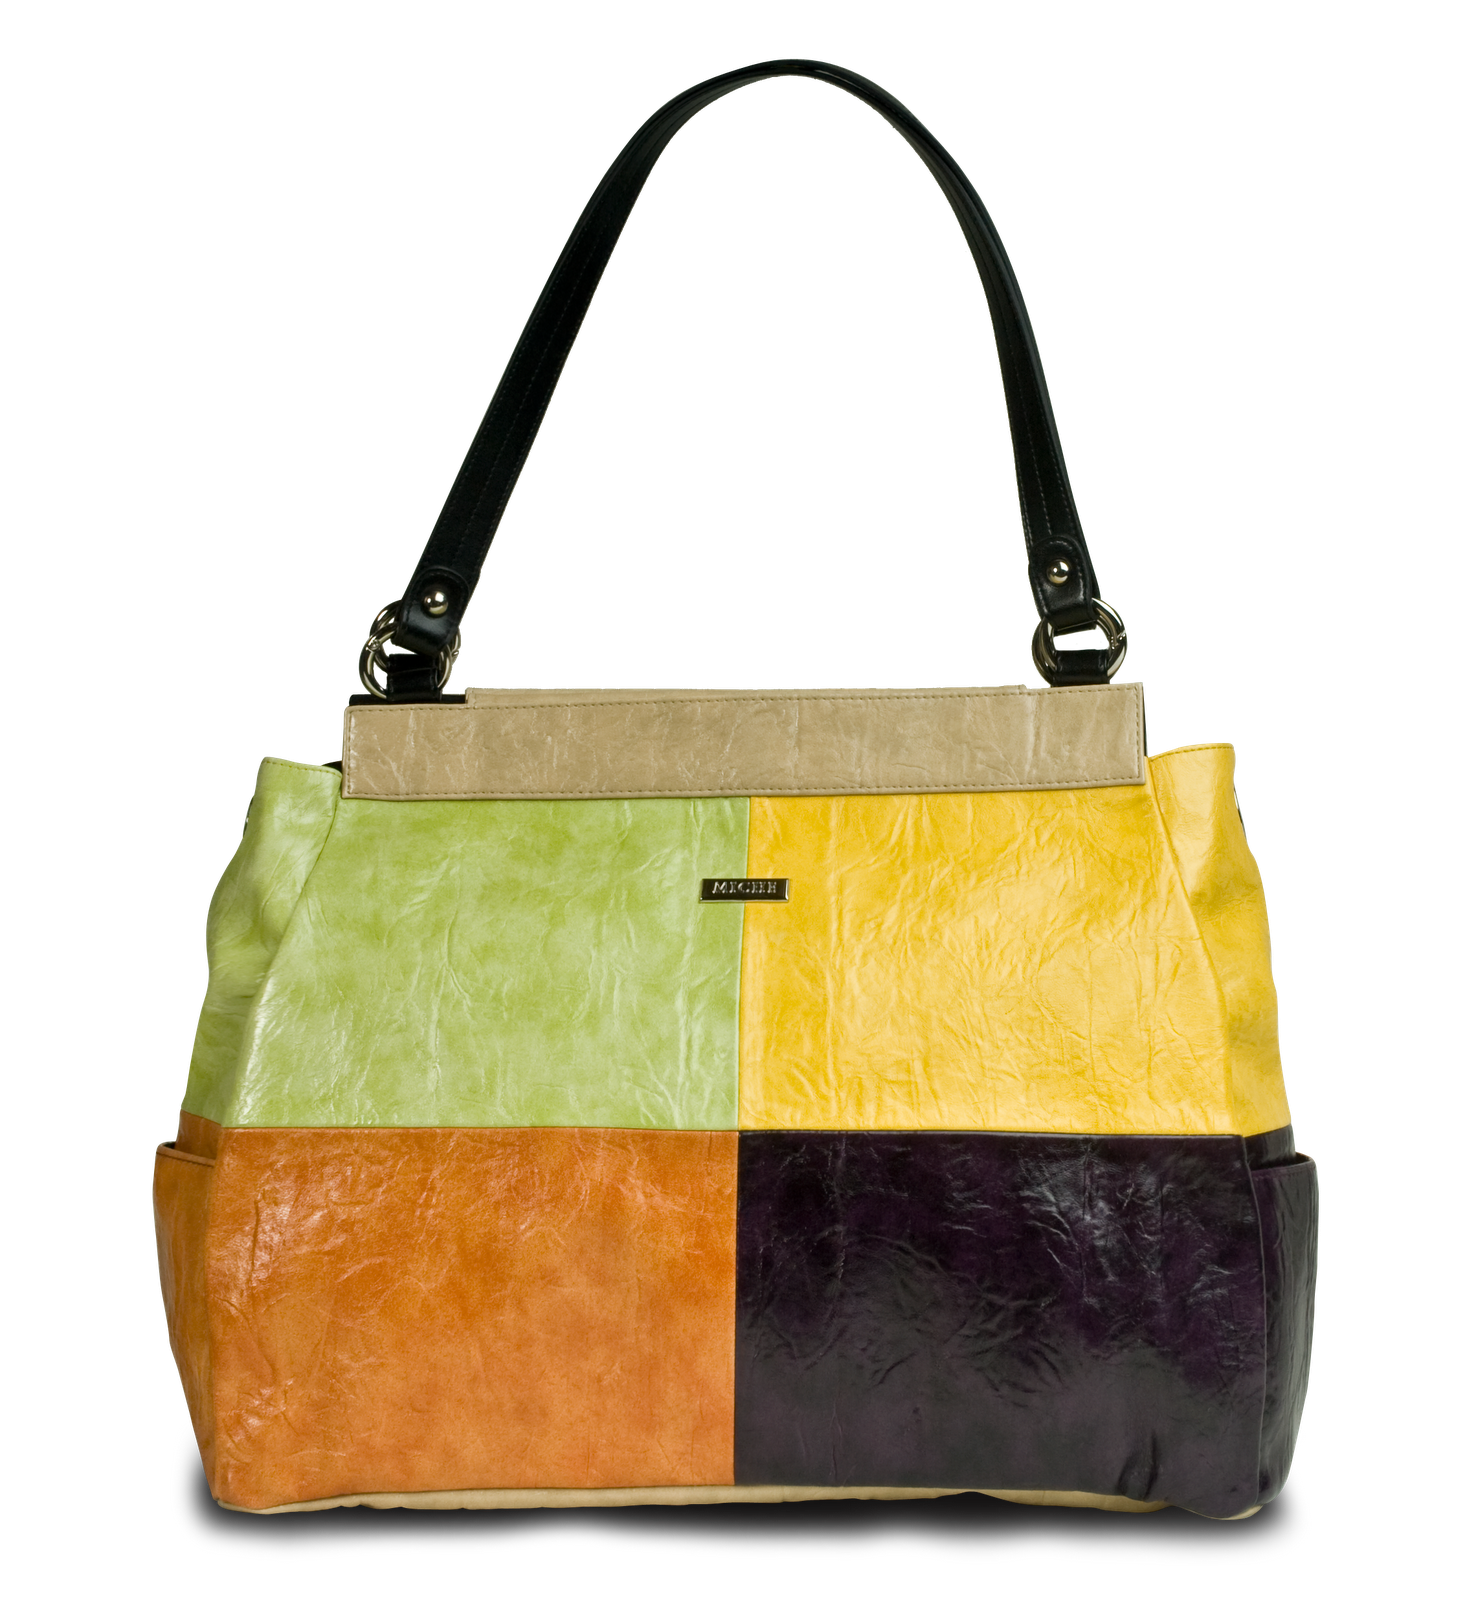 Miche has so many style purse shells to select from, you'll always find a shell that fits your mood, style, or outfit. Our shell designers continually design unique and stylish shells of all colors and sizes.